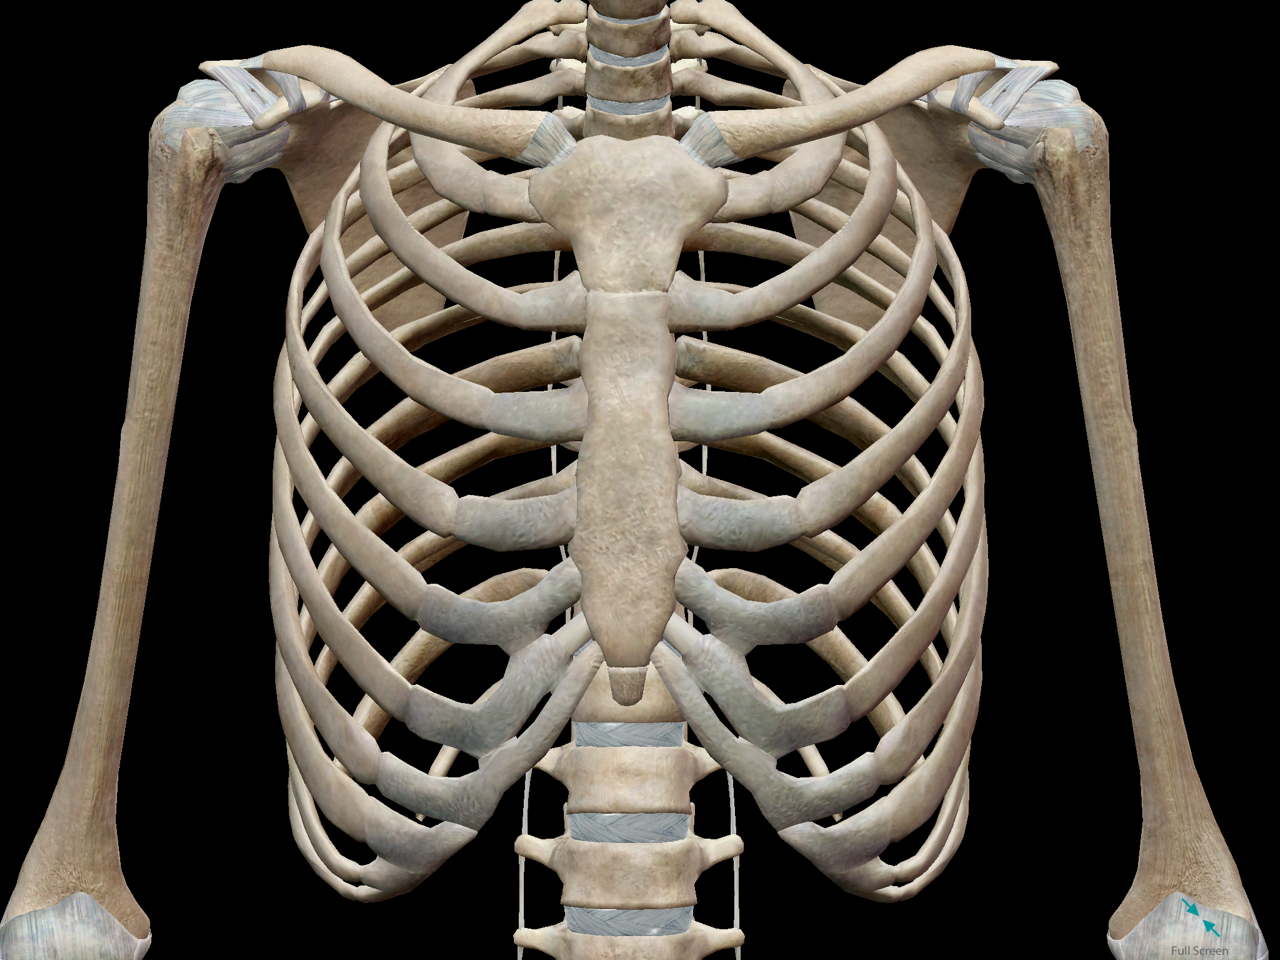 3d skeletal system: bones of the thoracic cage, Skeleton